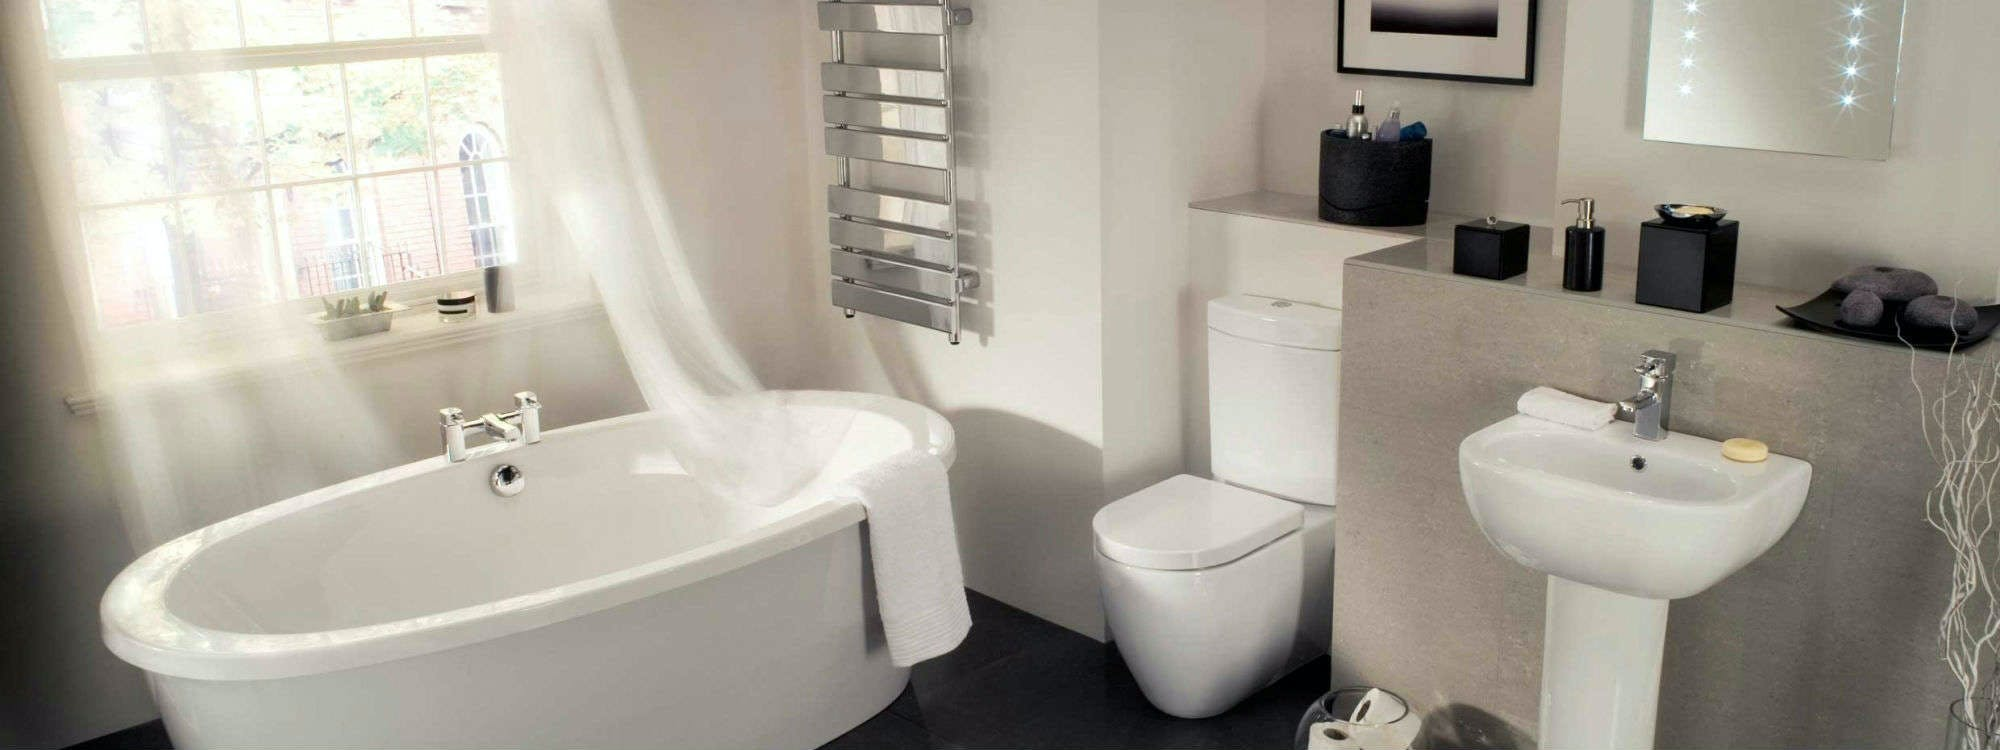 We are constantly seeking out fresh design ideas o you can be confident that your new minimalistically modern bathroom suite will look as on trend as the rest of your contemporary home.